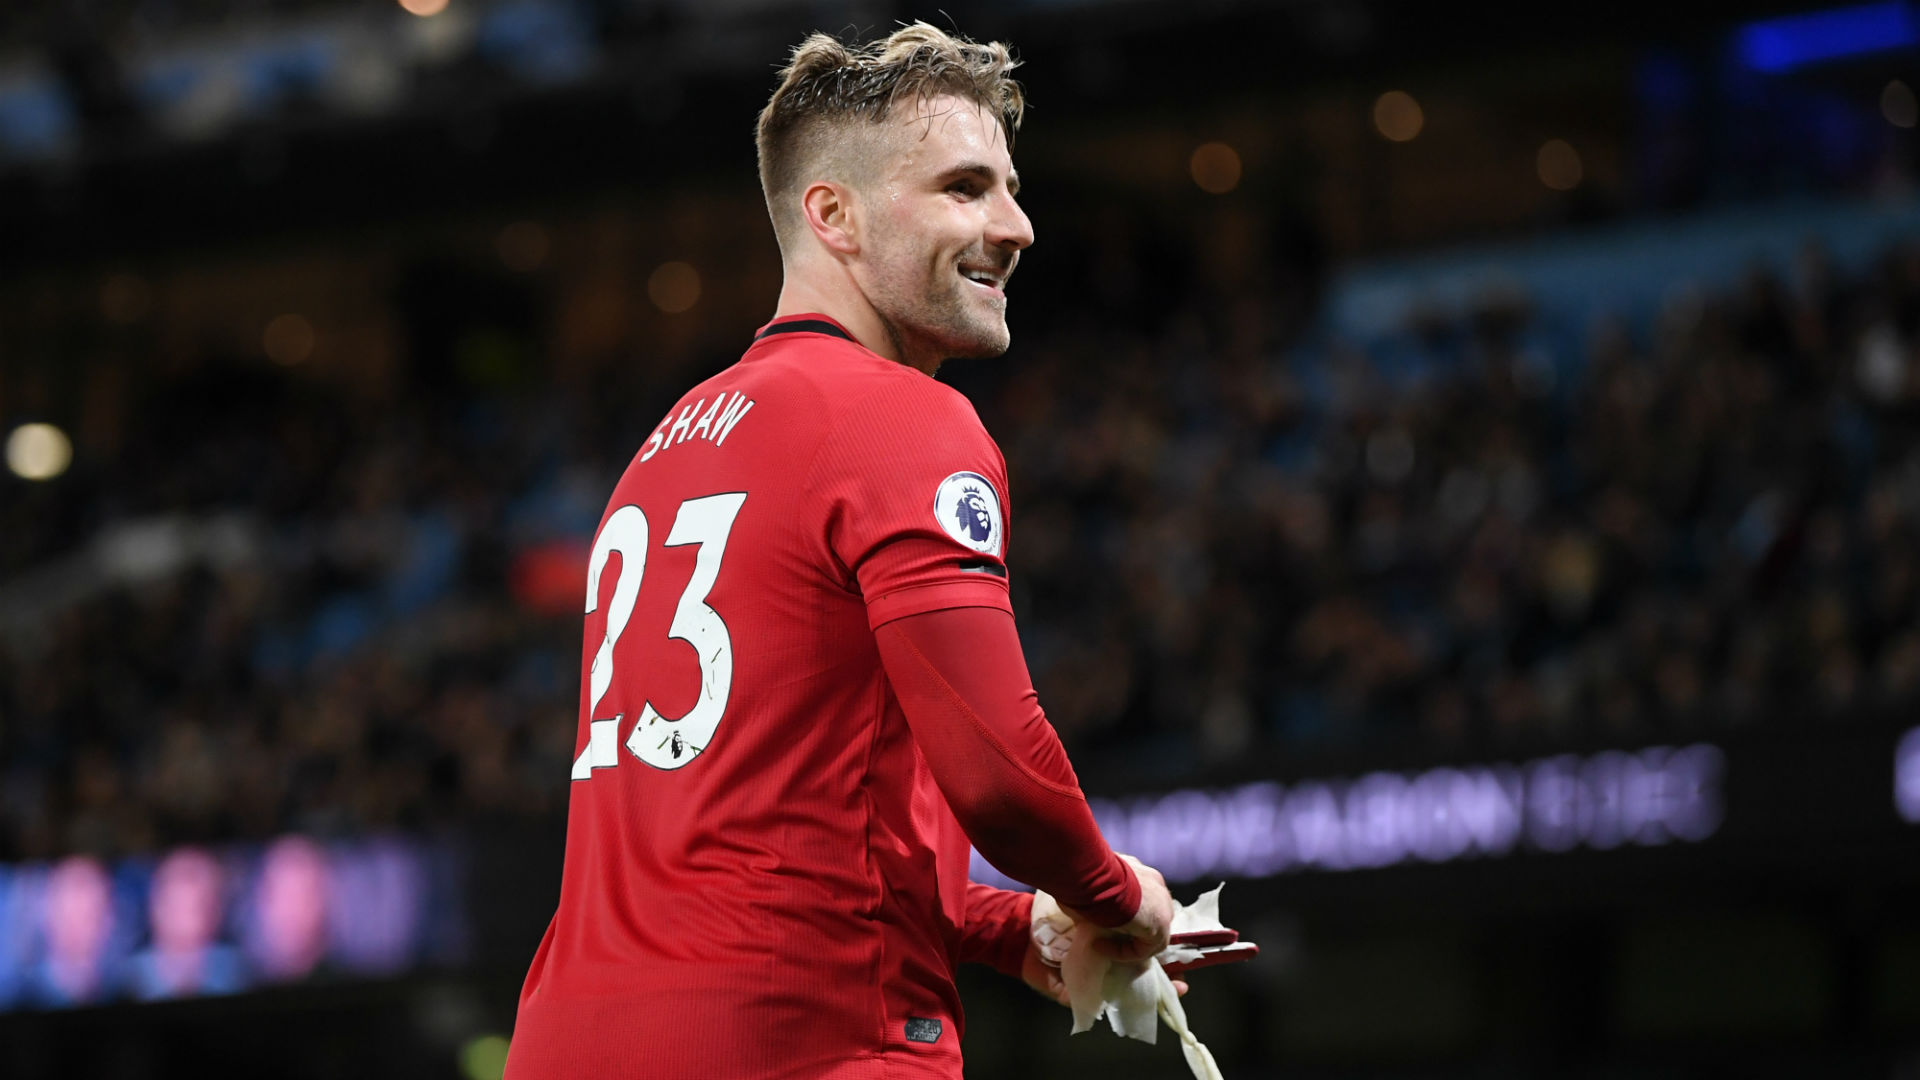 Shaw's move to central defence has given him another chance at Man Utd